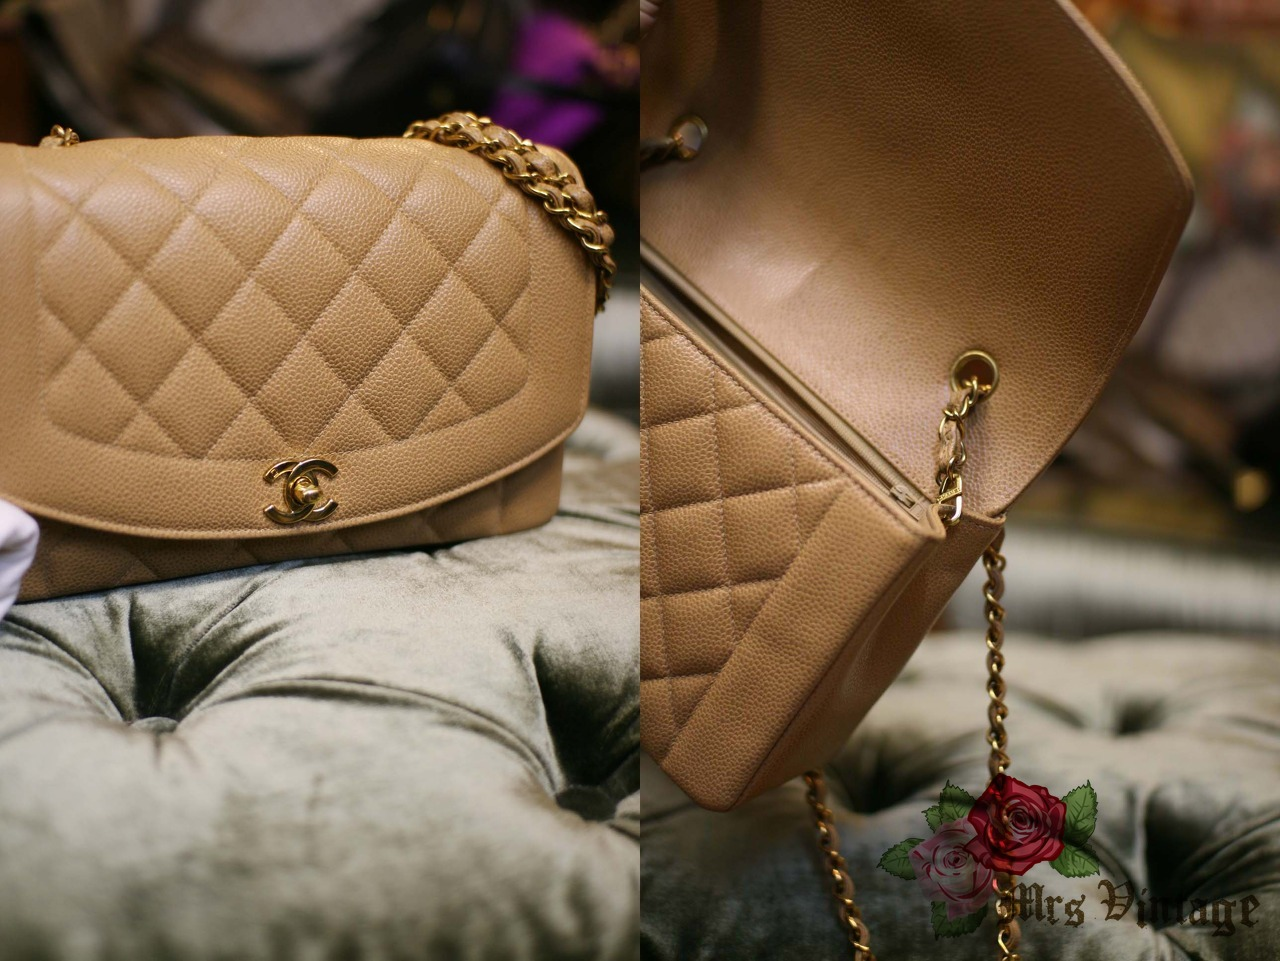 Chanel Caviar BEIGE Vintage Quilted Classic Diana Flap Bag RARE ... 7db59d7eafd61